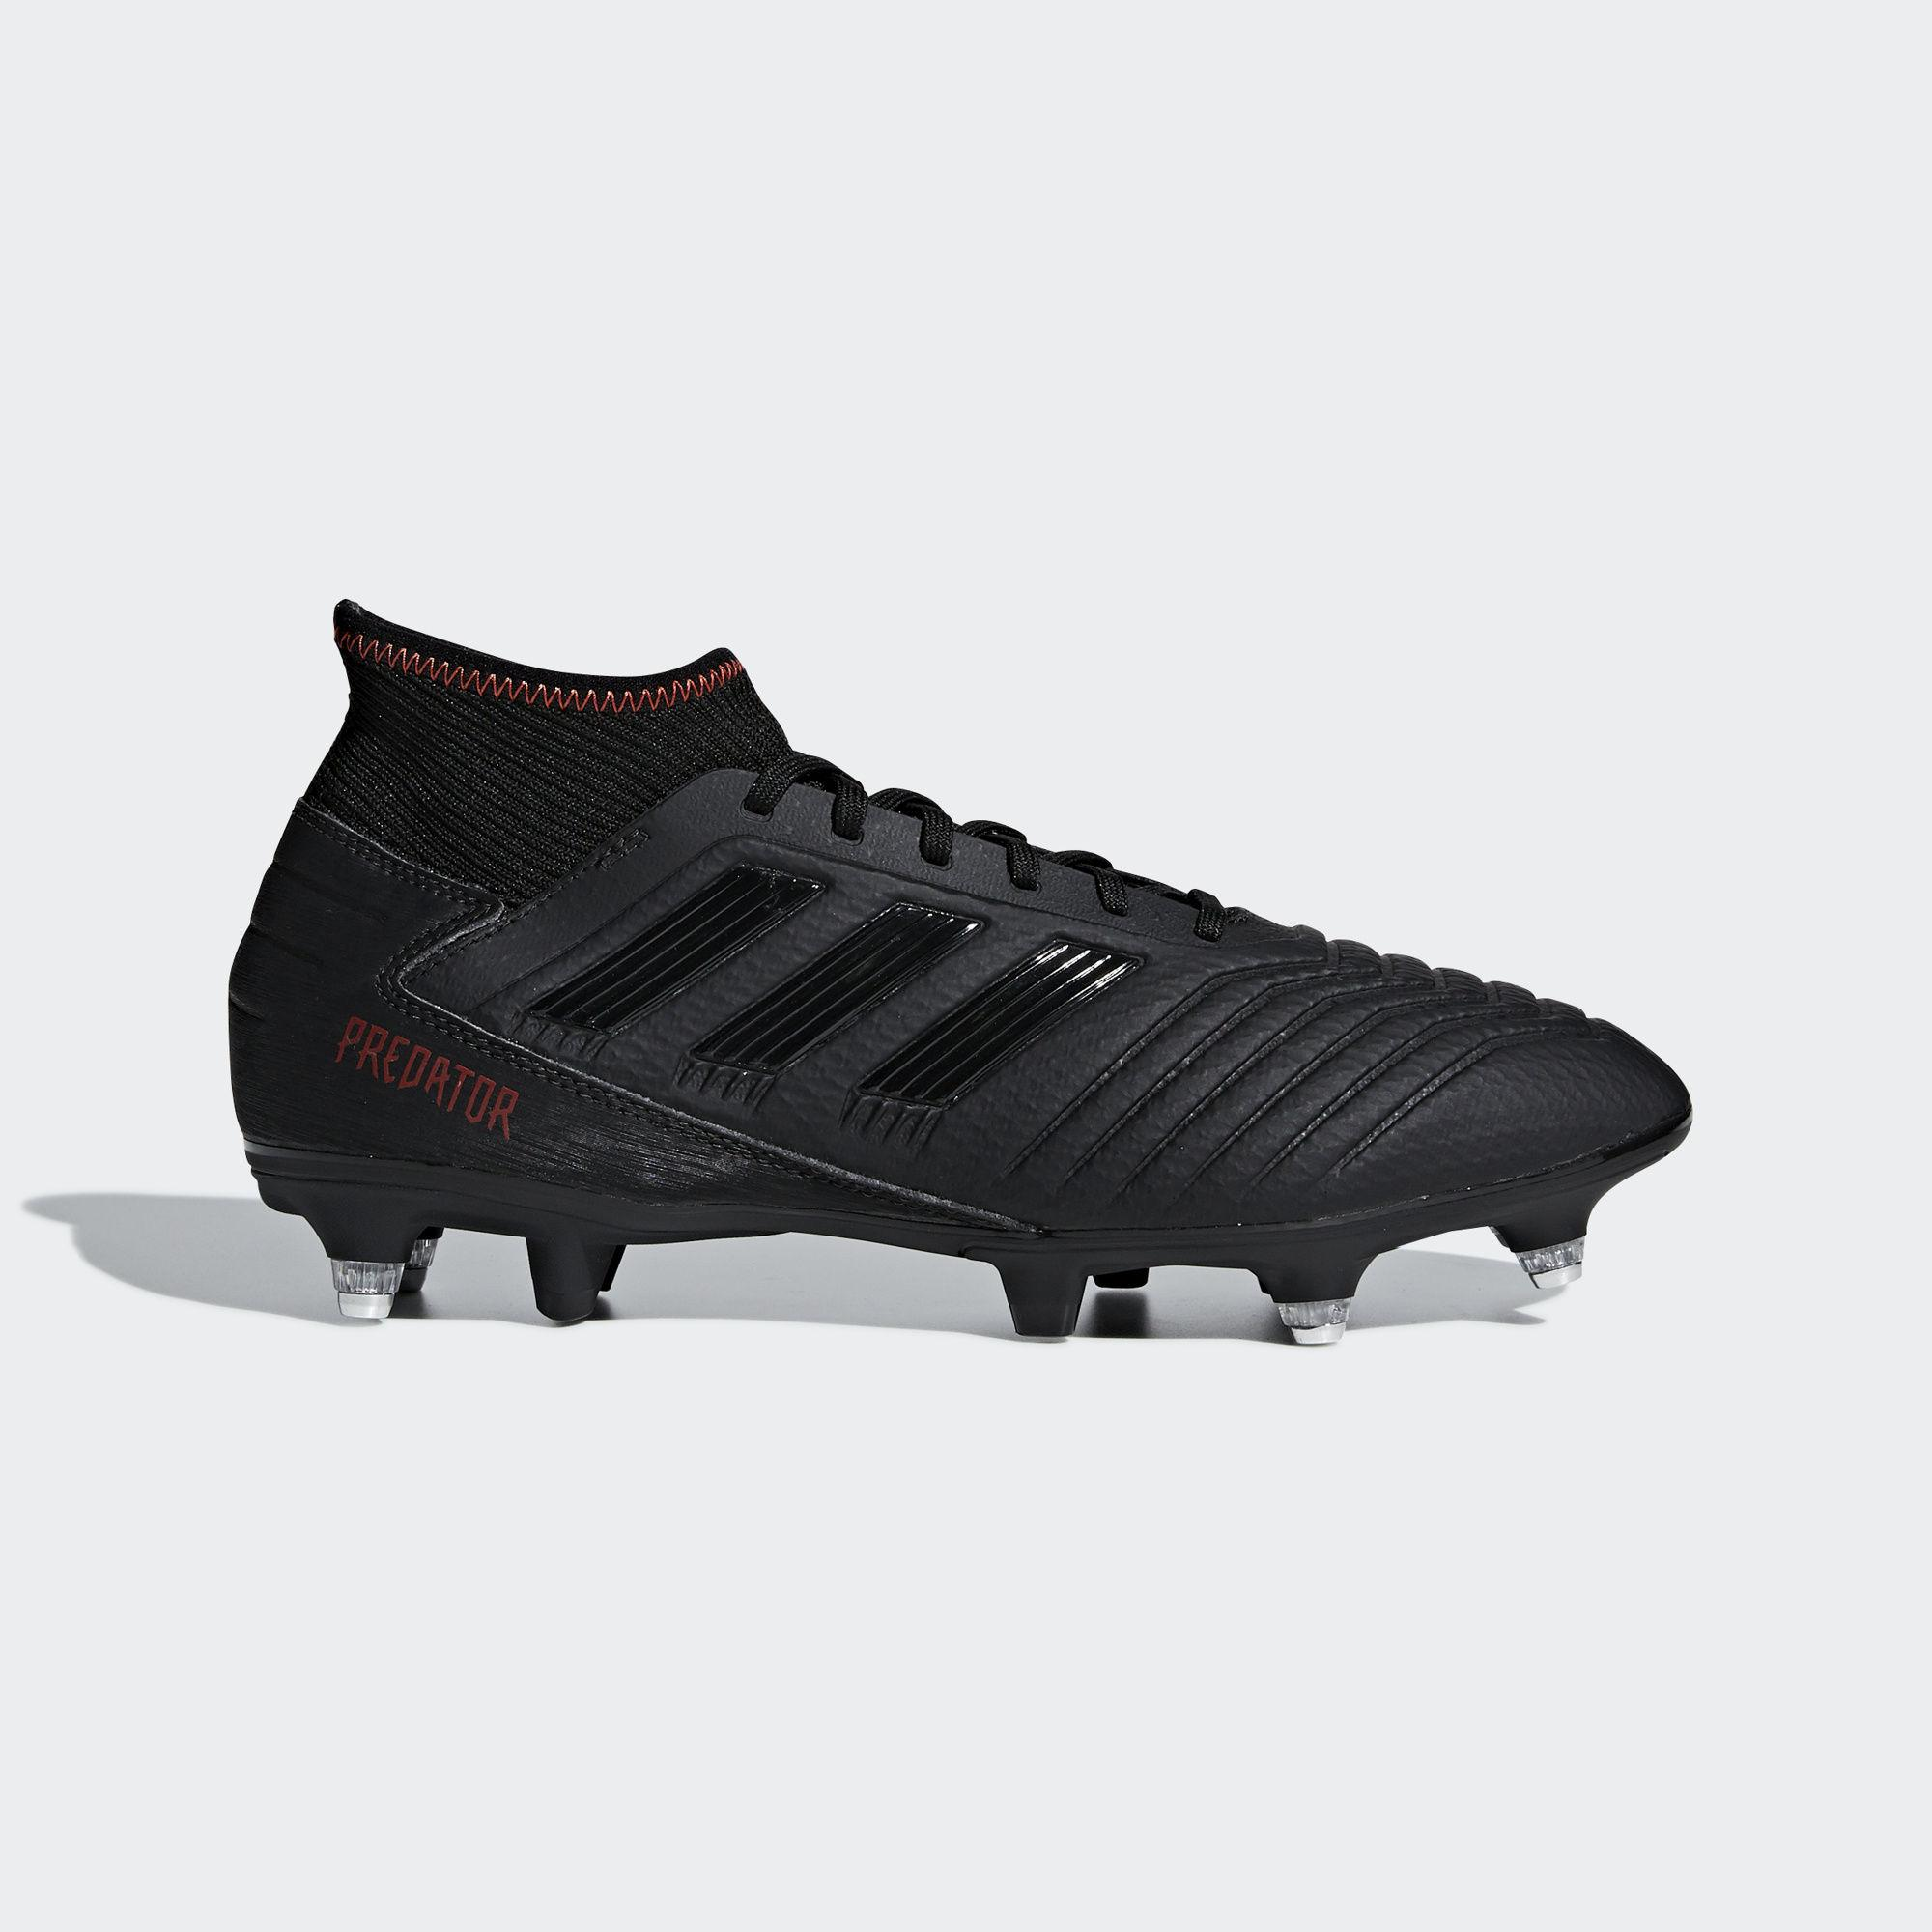 916596cd9293a adidas Predator 19.3 Soft Ground Boots in Black for Men - Lyst